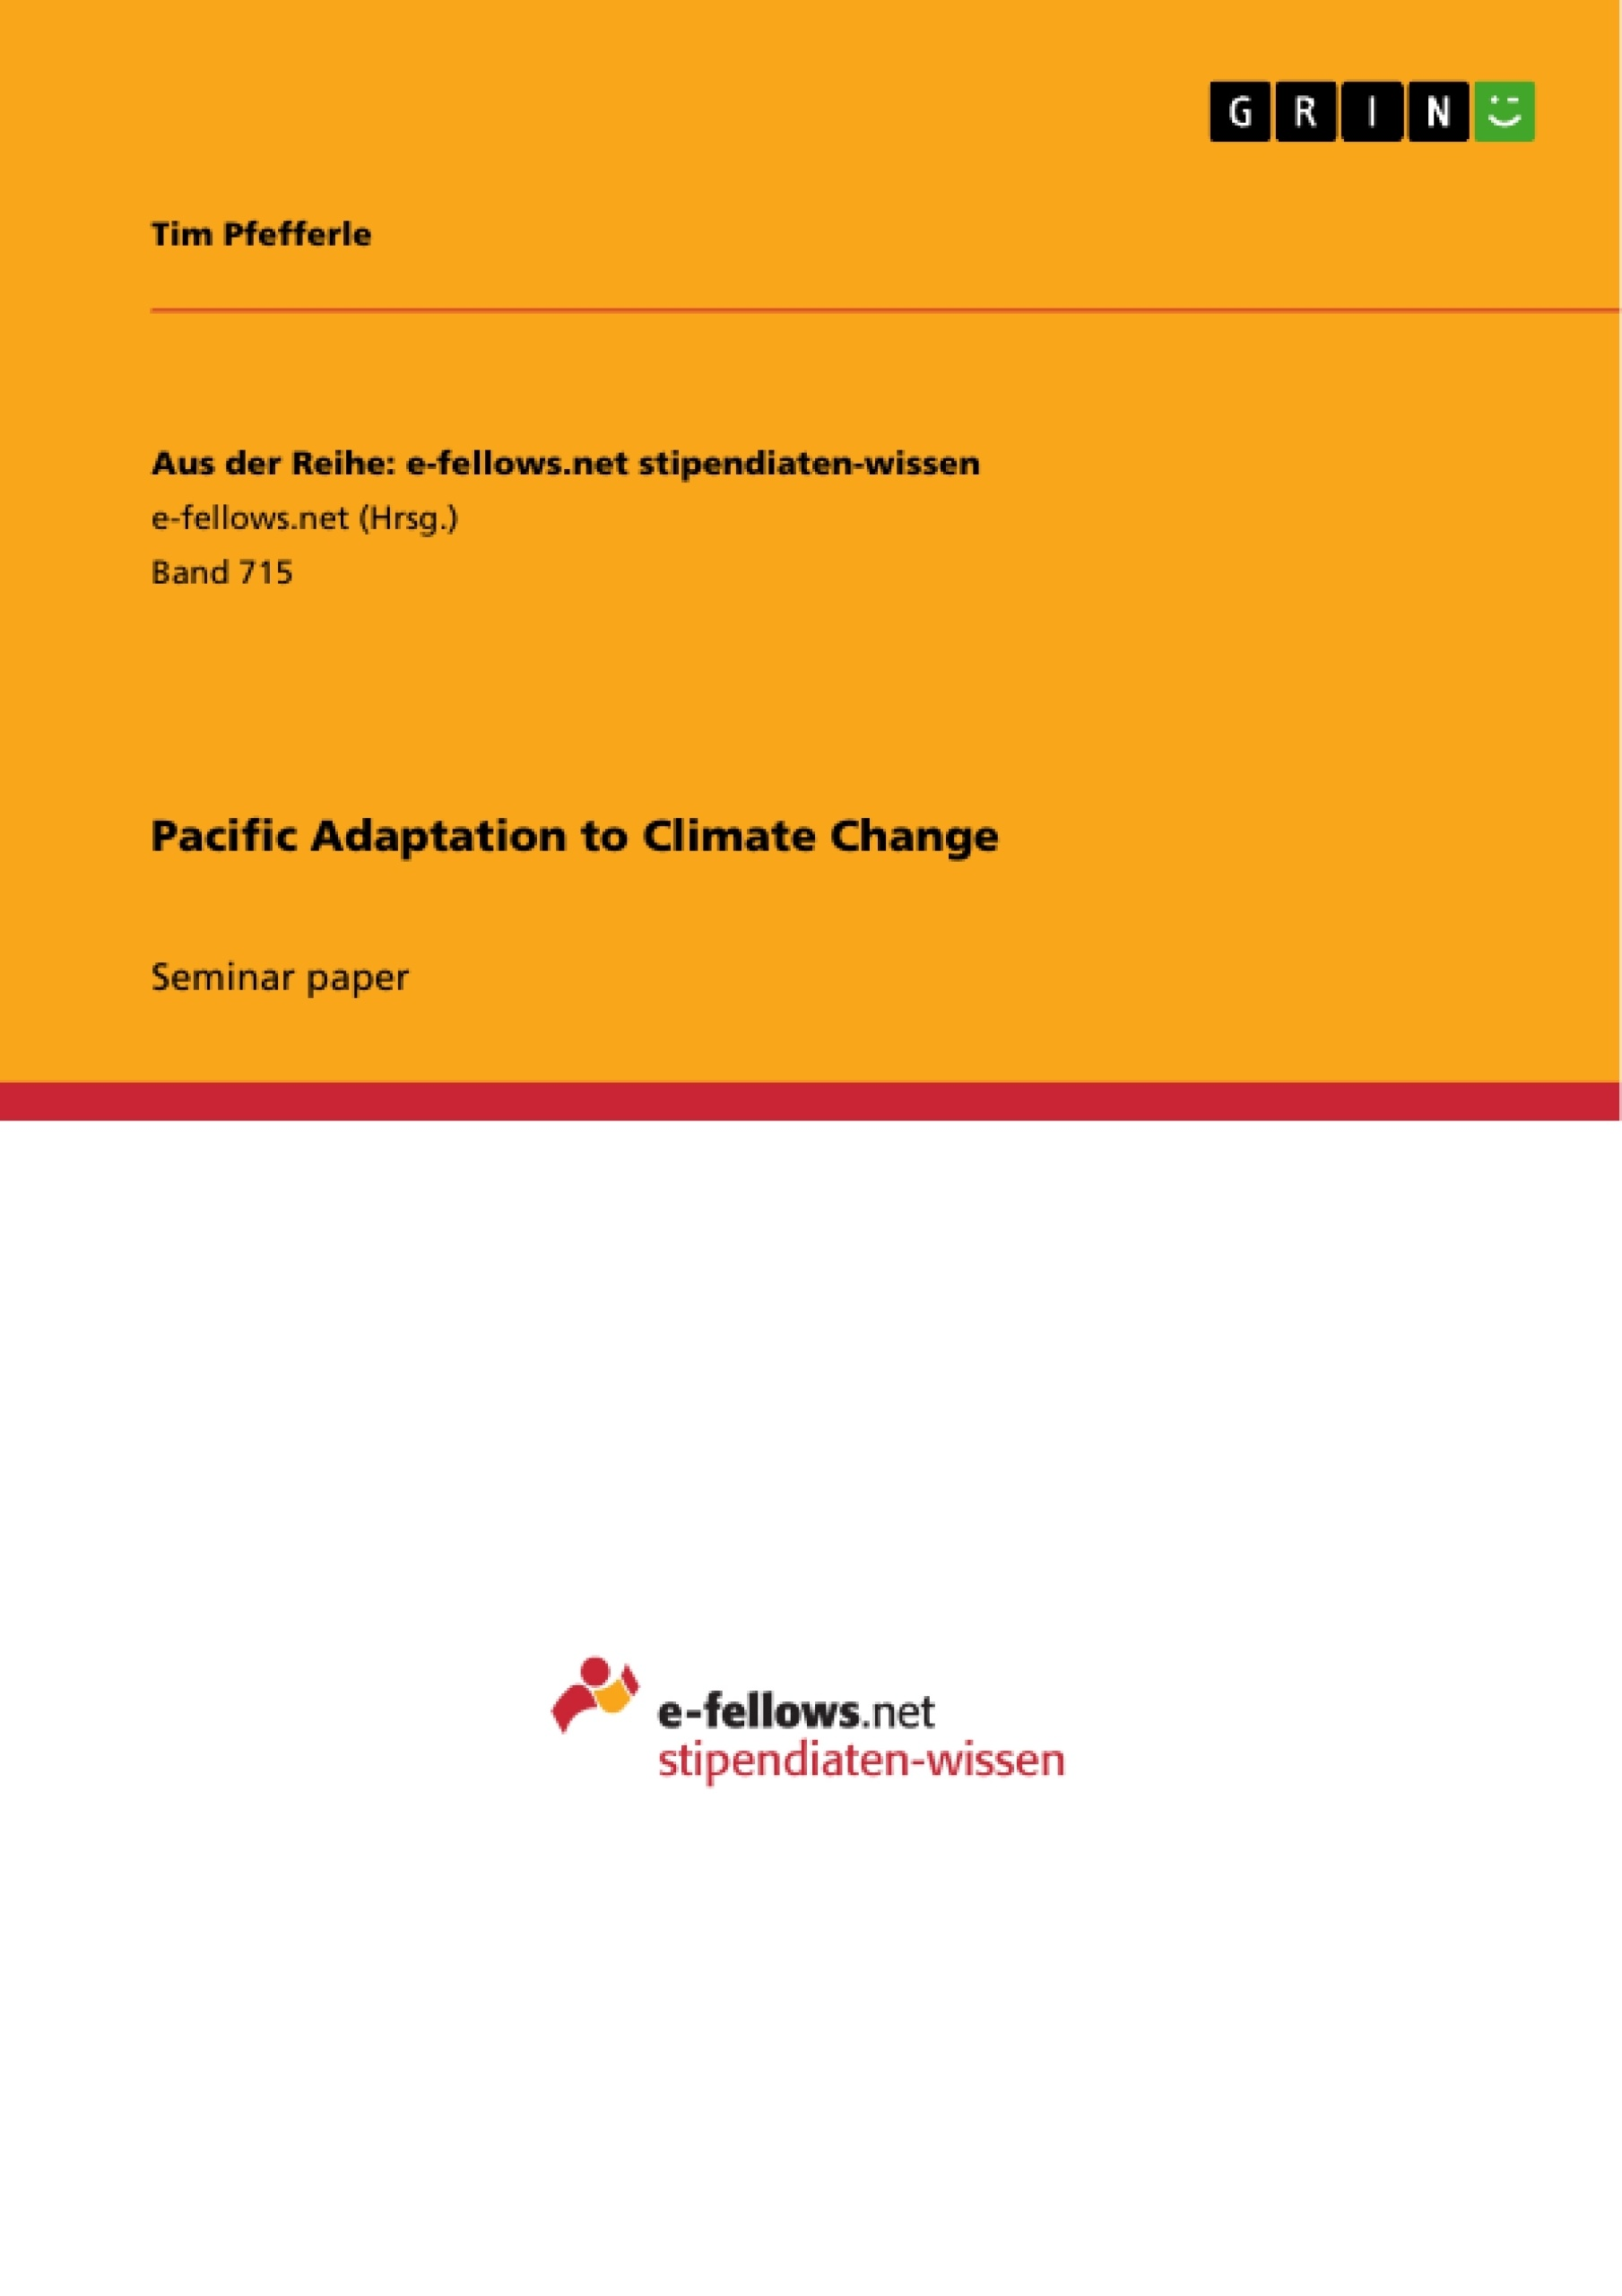 Title: Pacific Adaptation to Climate Change